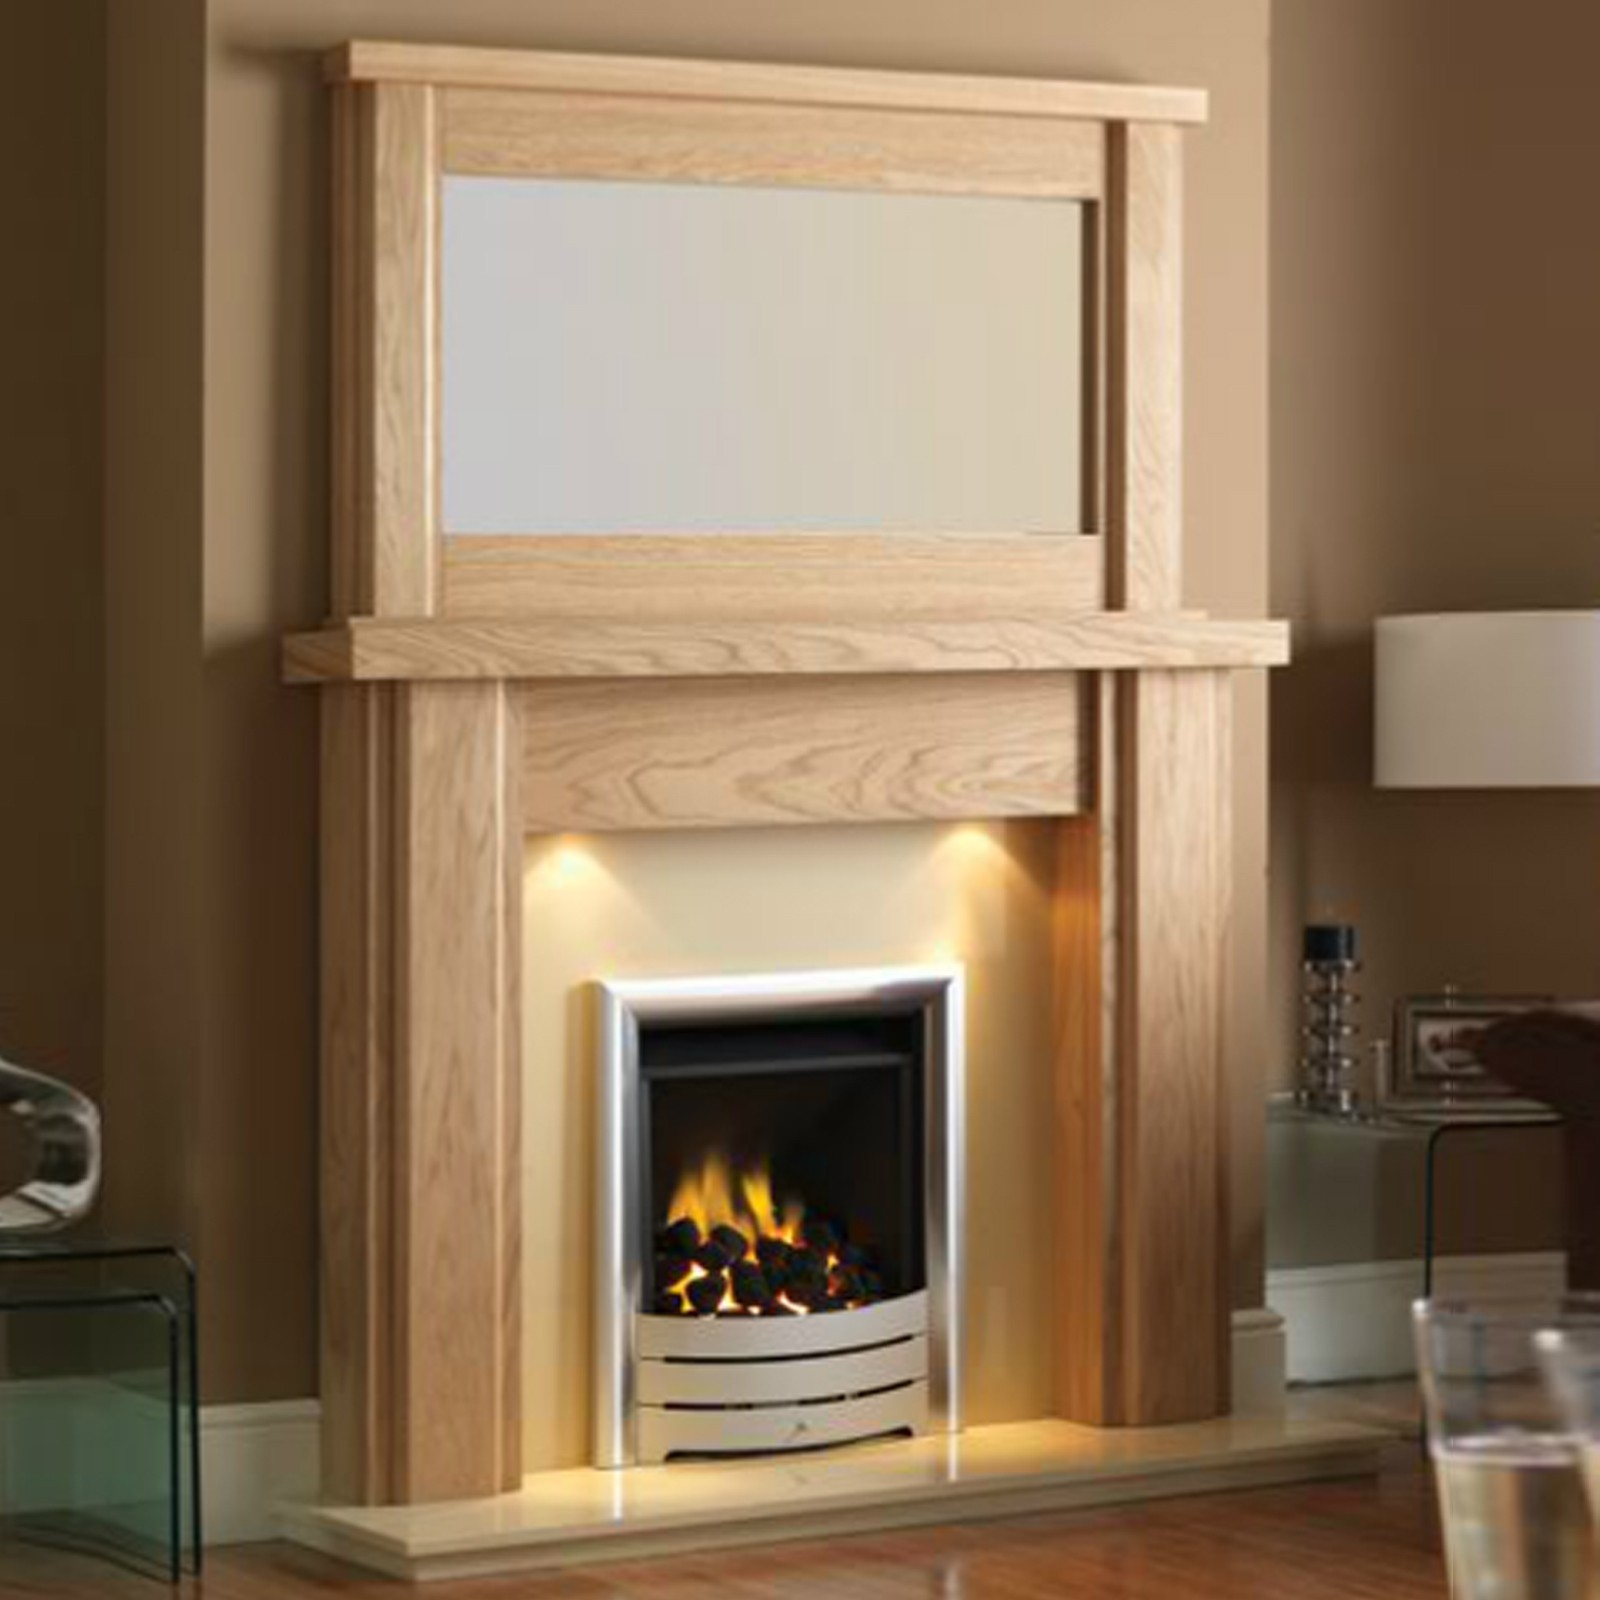 Oak veneer mantel